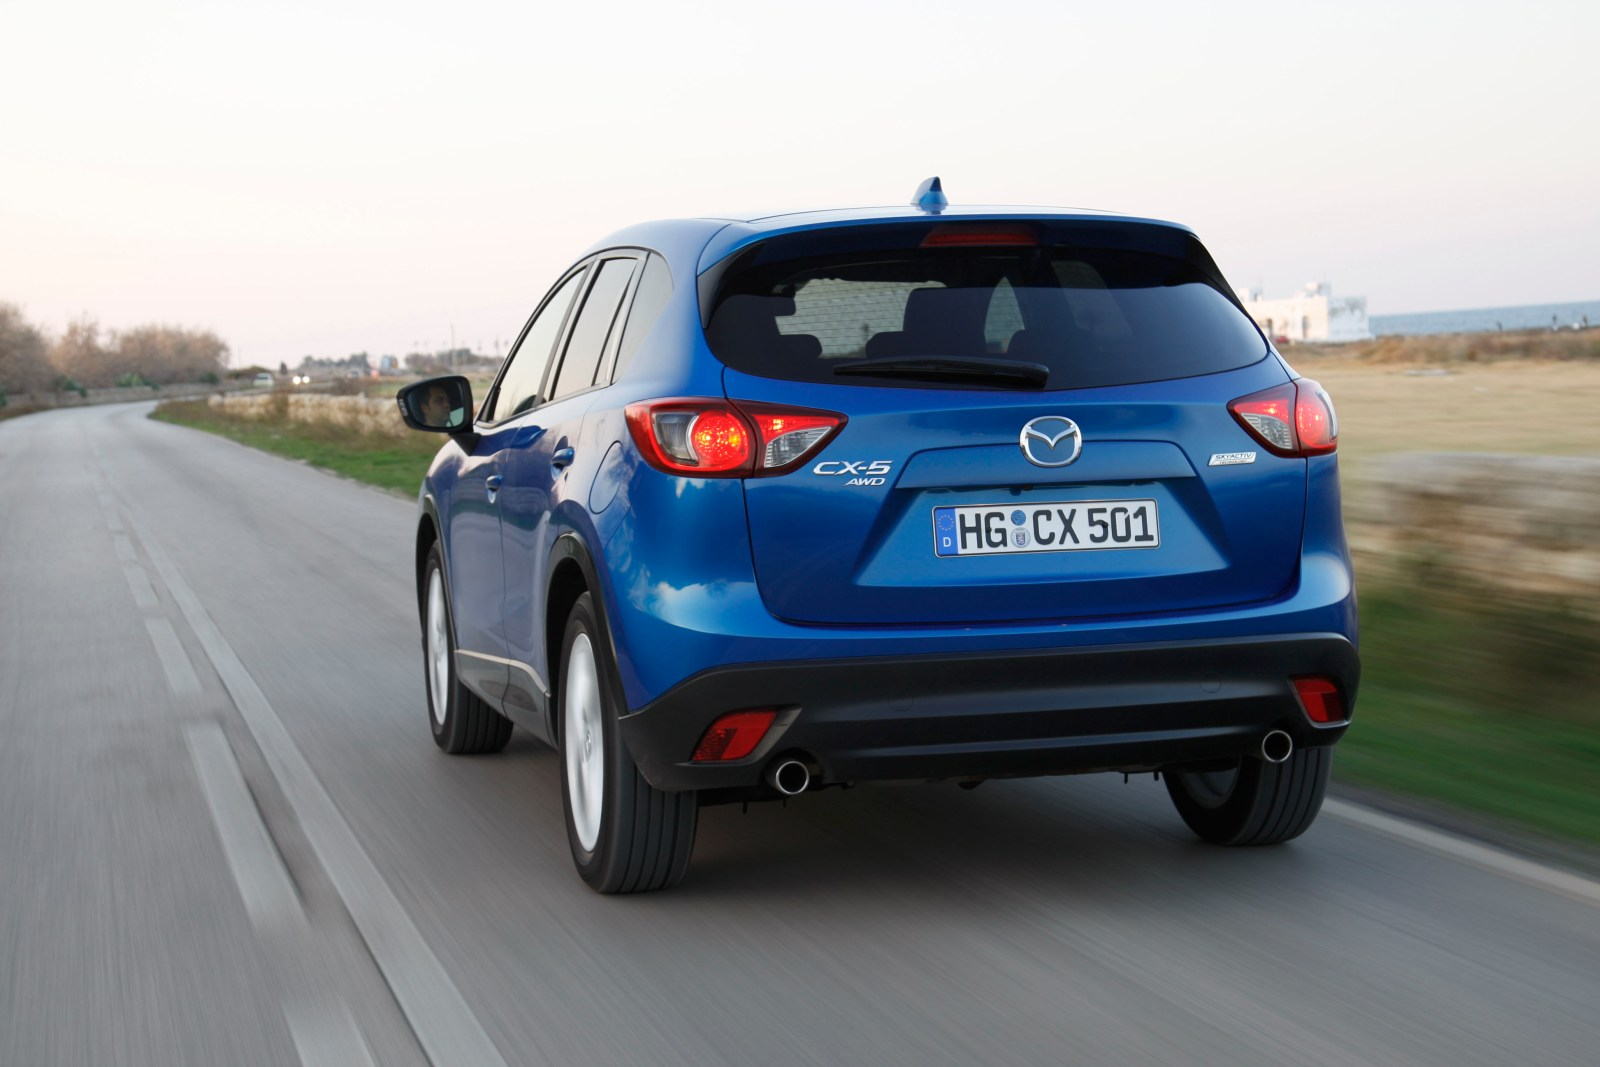 Mazda Cx 5 2007 Review Amazing Pictures And Images Look At The Car